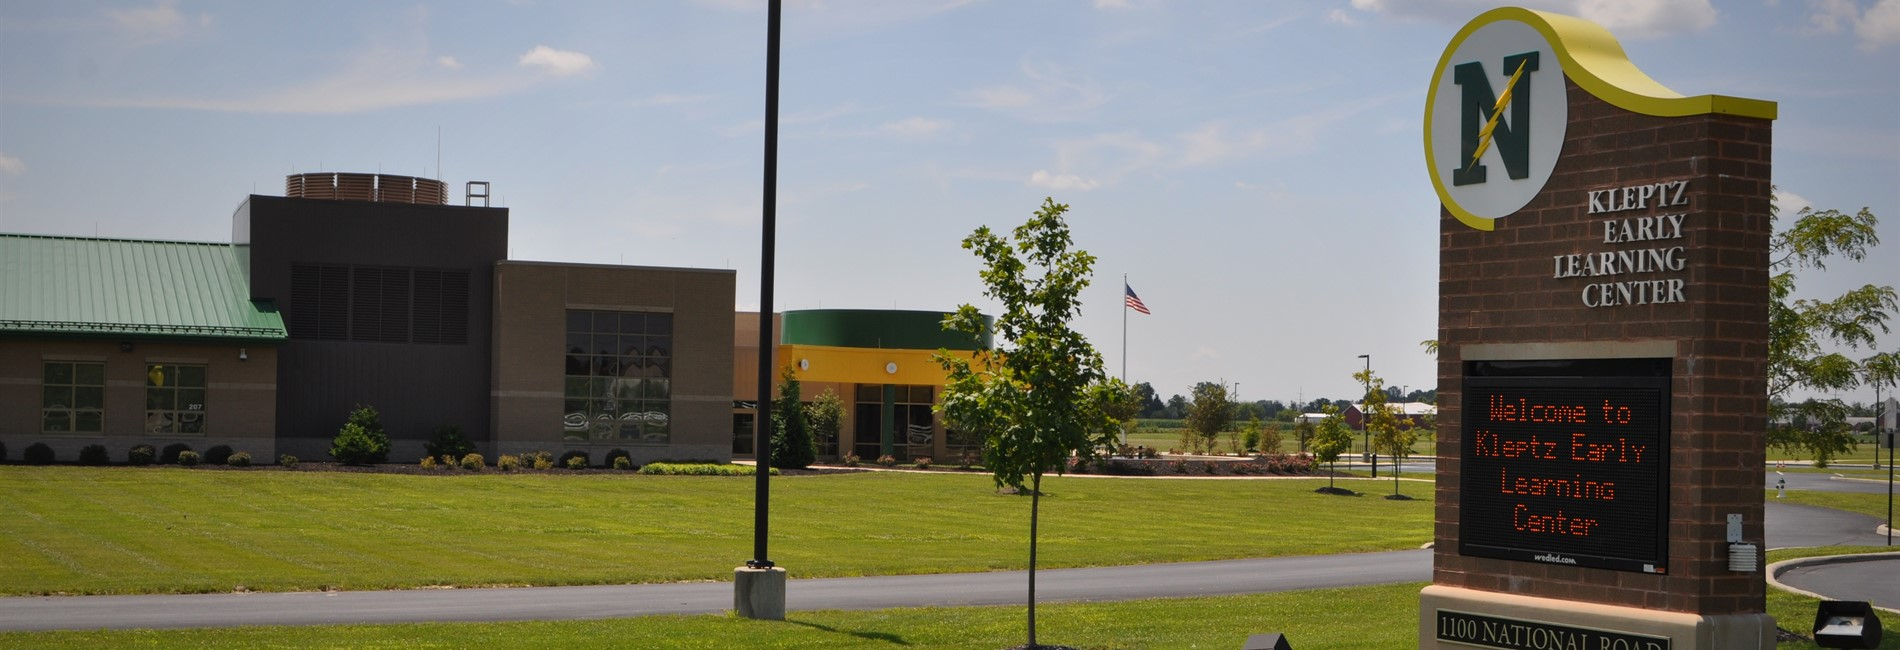 Kleptz Early Learning Center